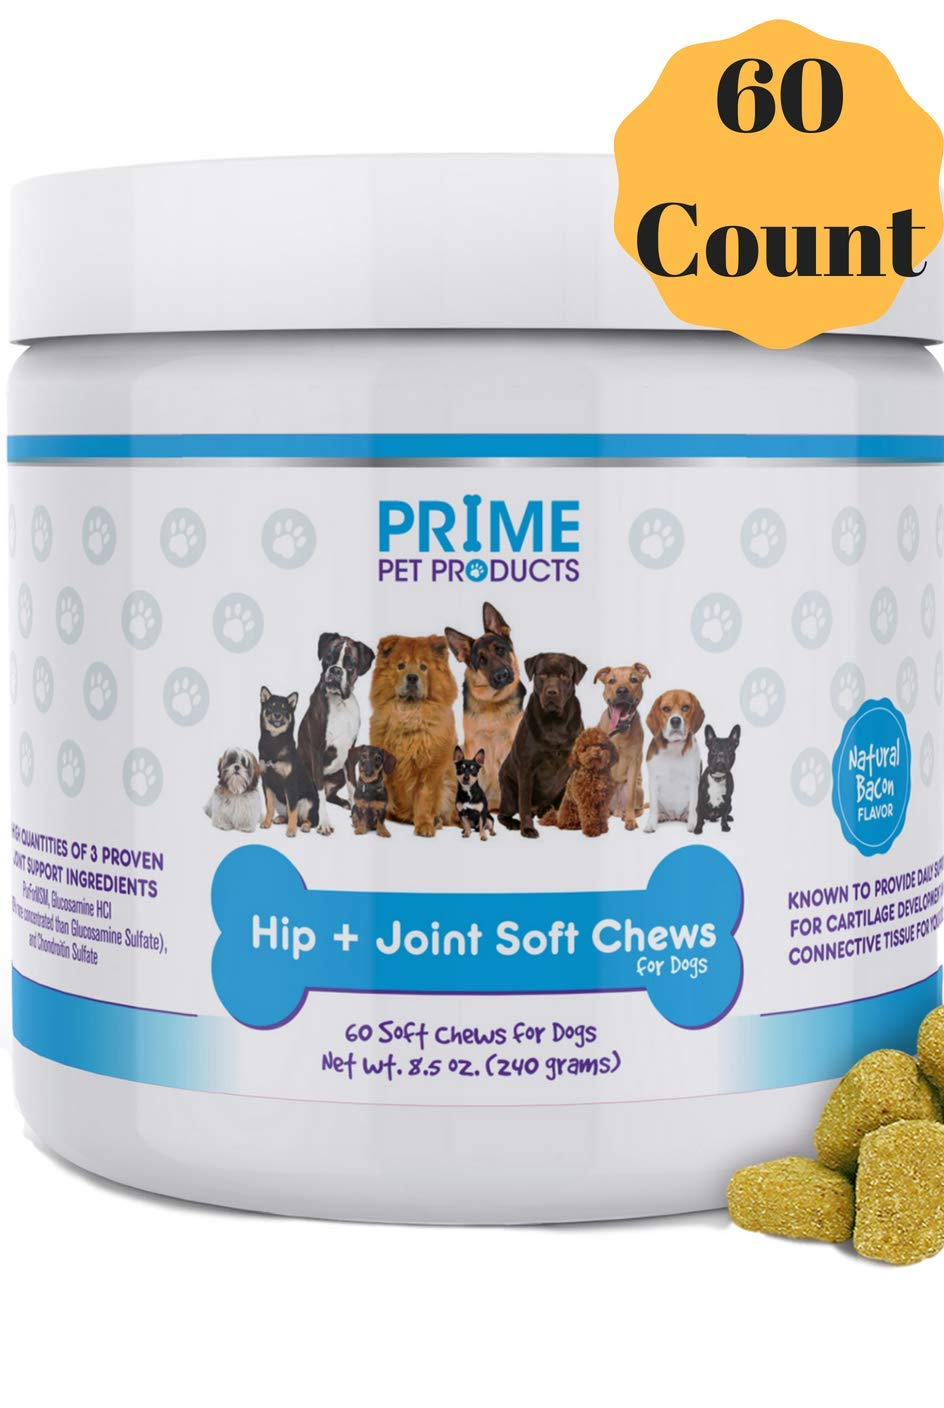 Glucosamine Chondroitin for Dogs - Advanced Hip and Joint Supplement (60 Count) Dog Soft Chews - MSM and Organic Turmeric - Supports Healthy Joints and Arthritis - Made in USA - Bacon Flavor Vitamins